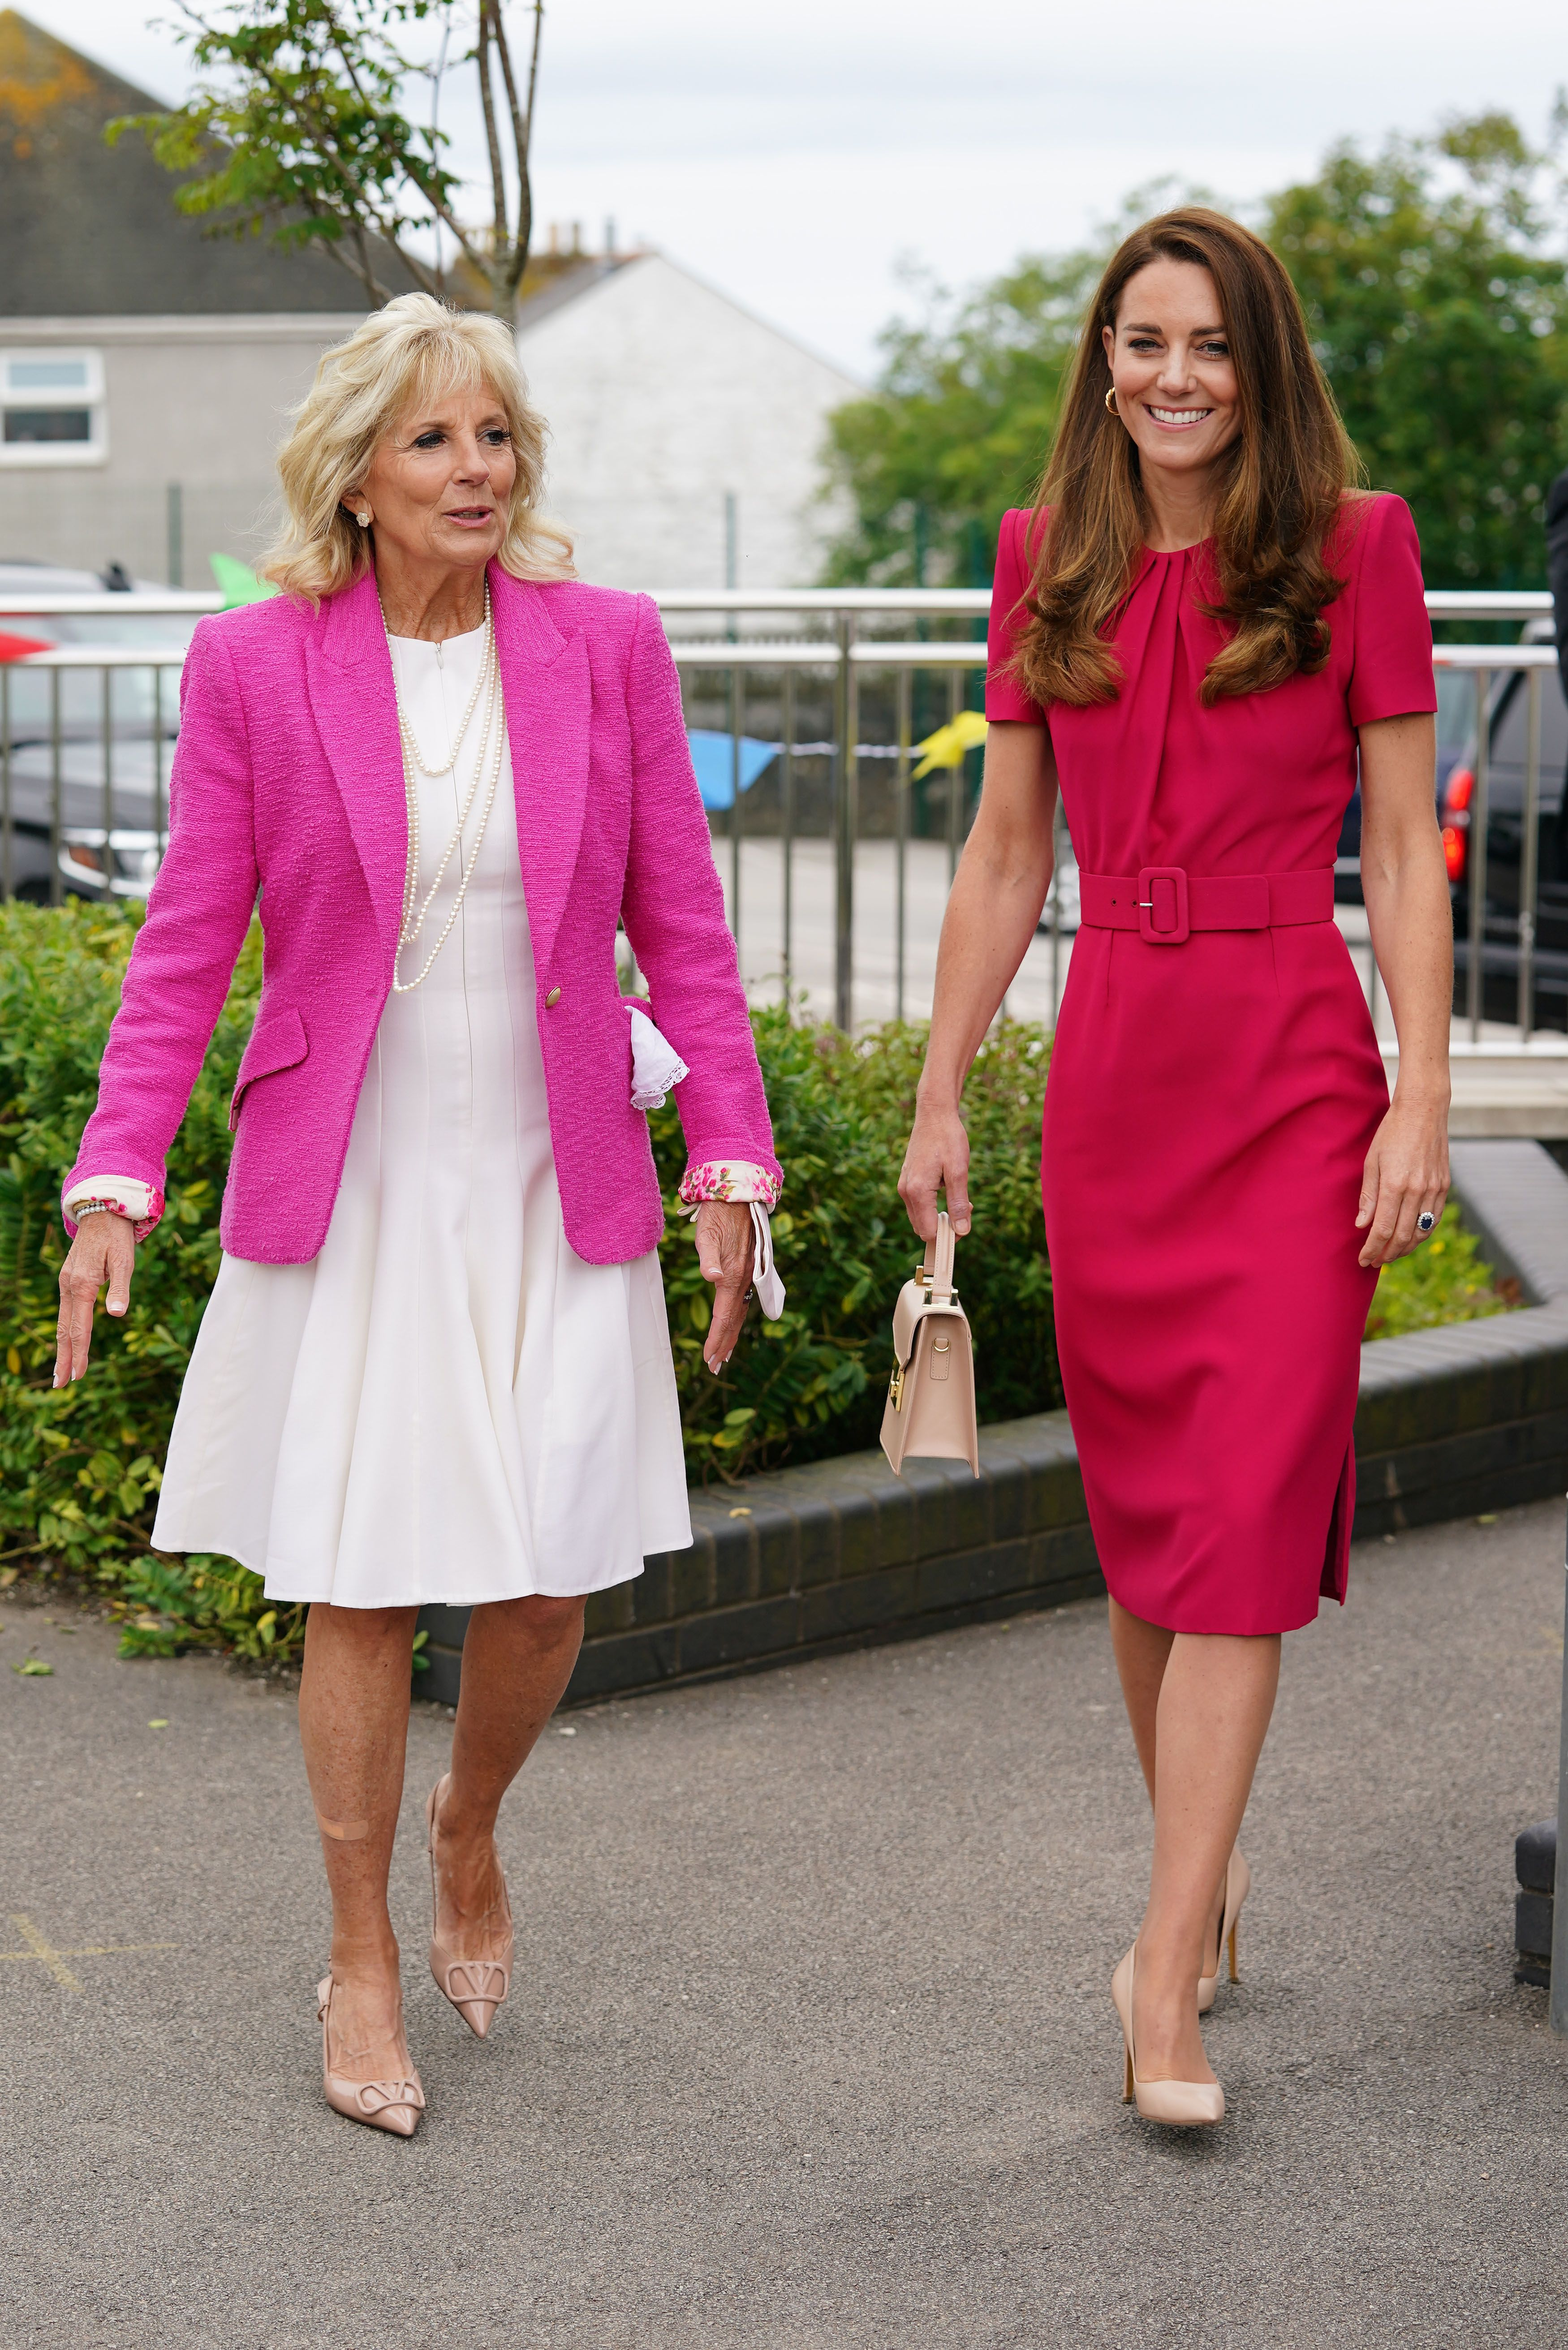 The Duchess of Cambridge and Dr. Jill Biden co-wrote an op-ed about early childhood care